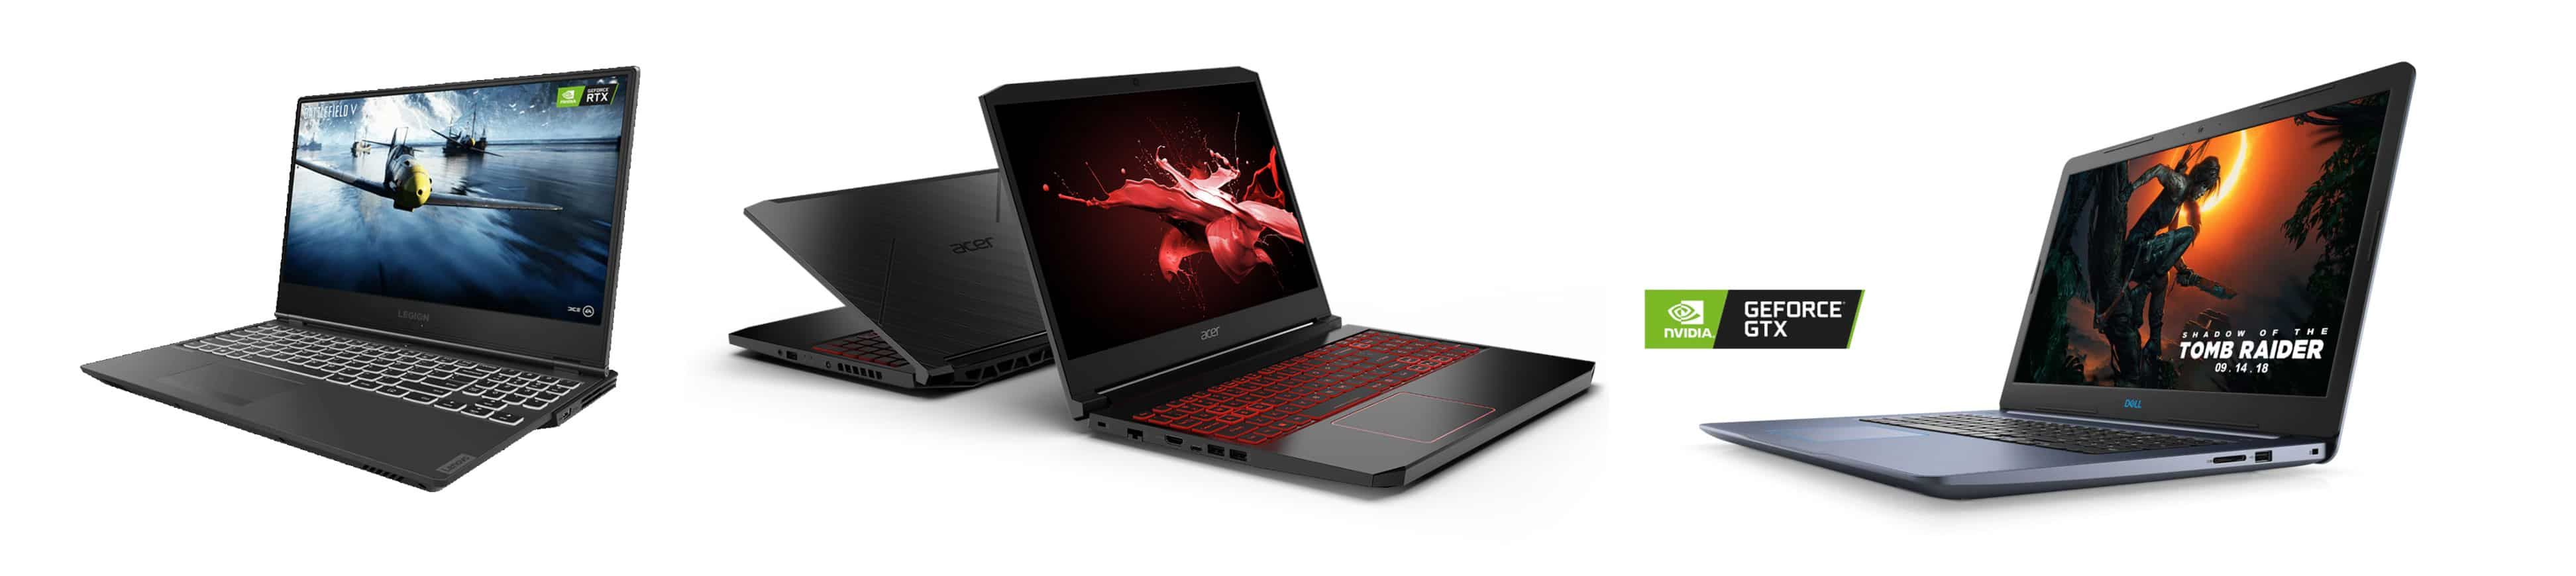 Best gaming laptops and ultrabooks in 2019 (detailed guide)